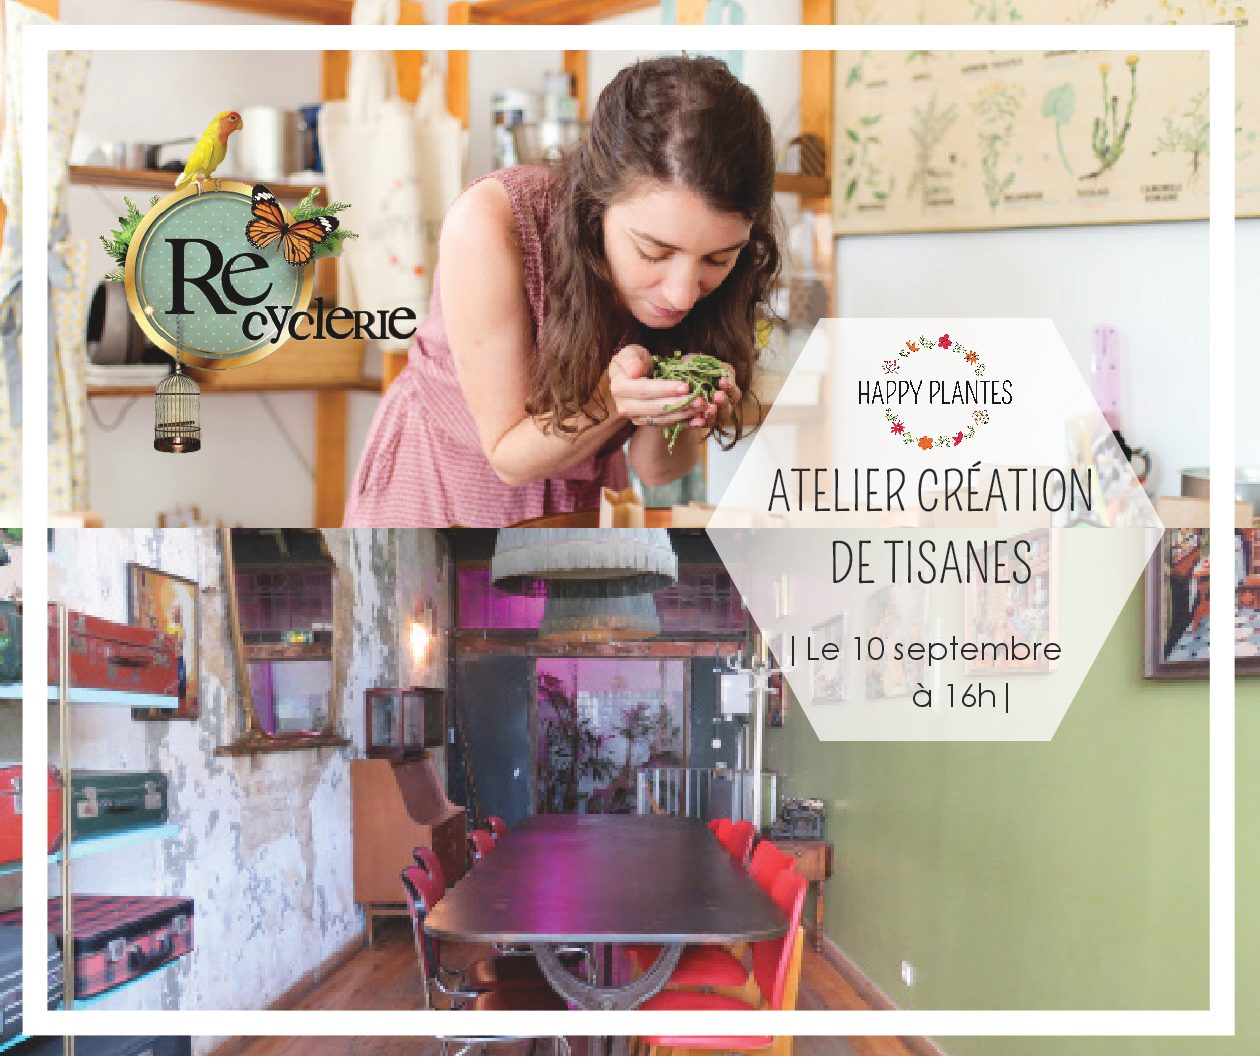 Affiche_Recyclerie_230417